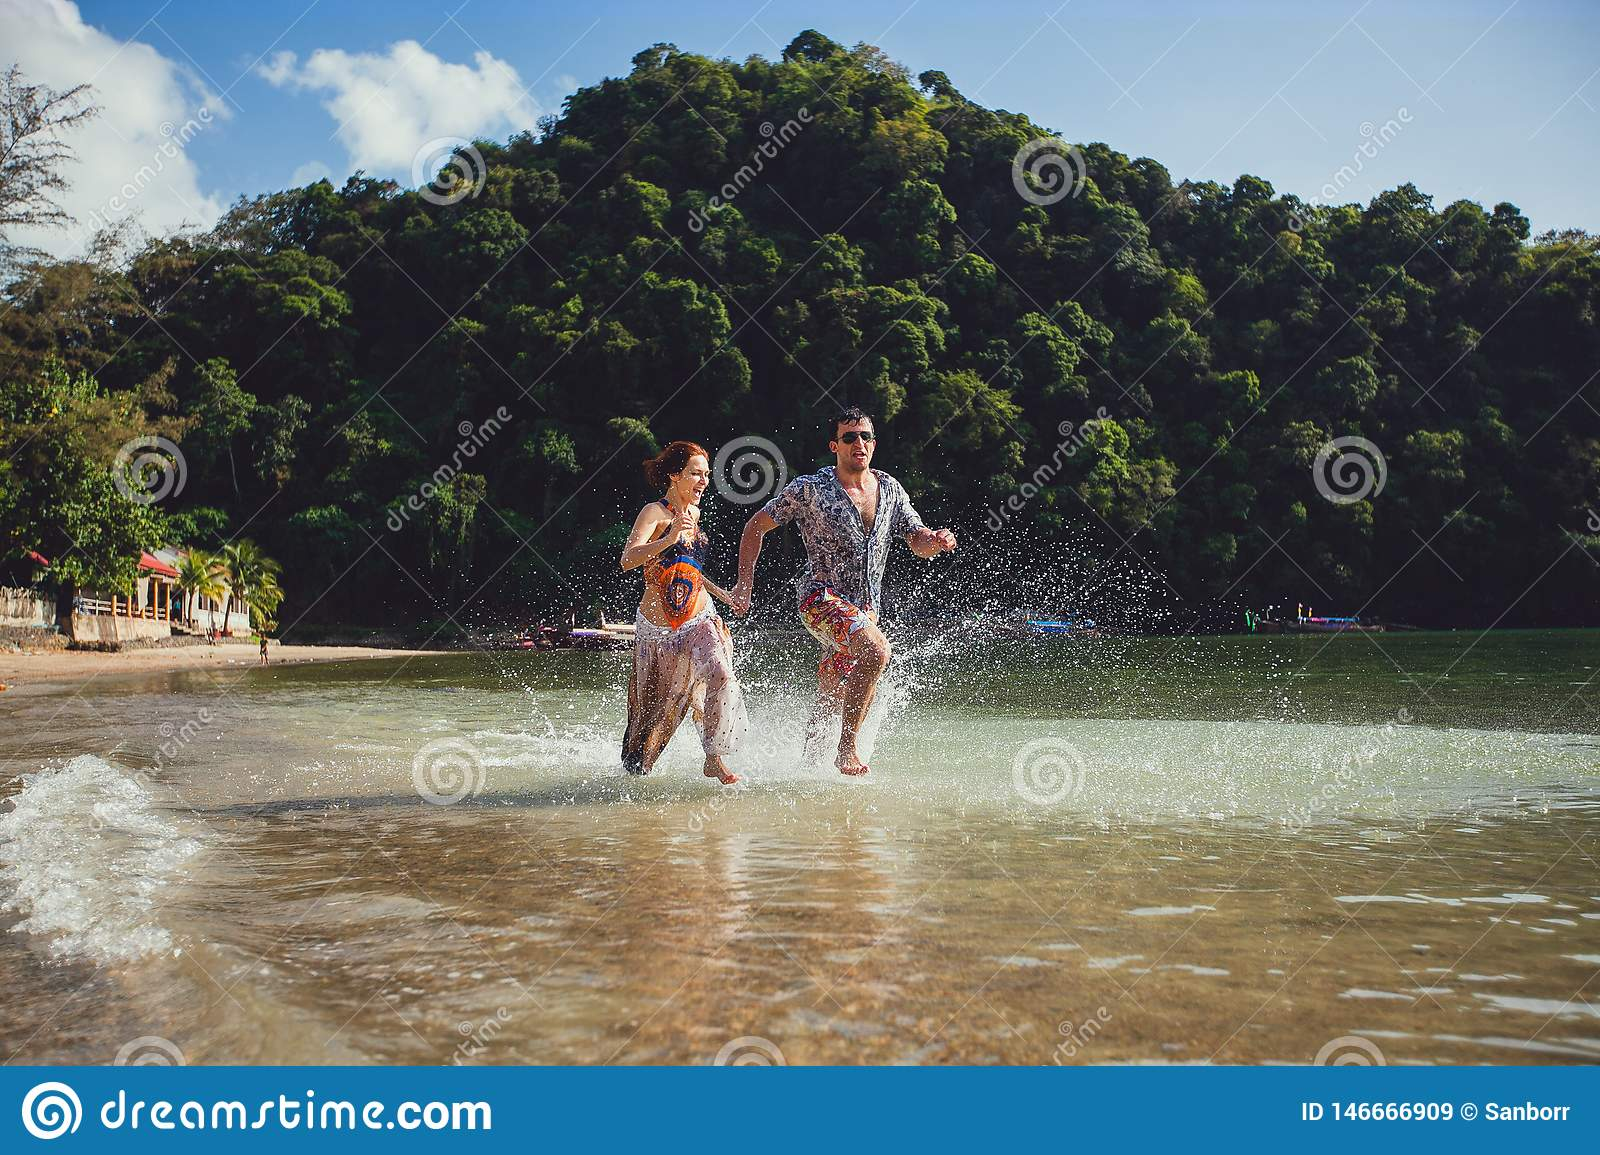 Beautiful tourist young couple holding hands together running along the beach shore with mountains and blue sea water and sky,